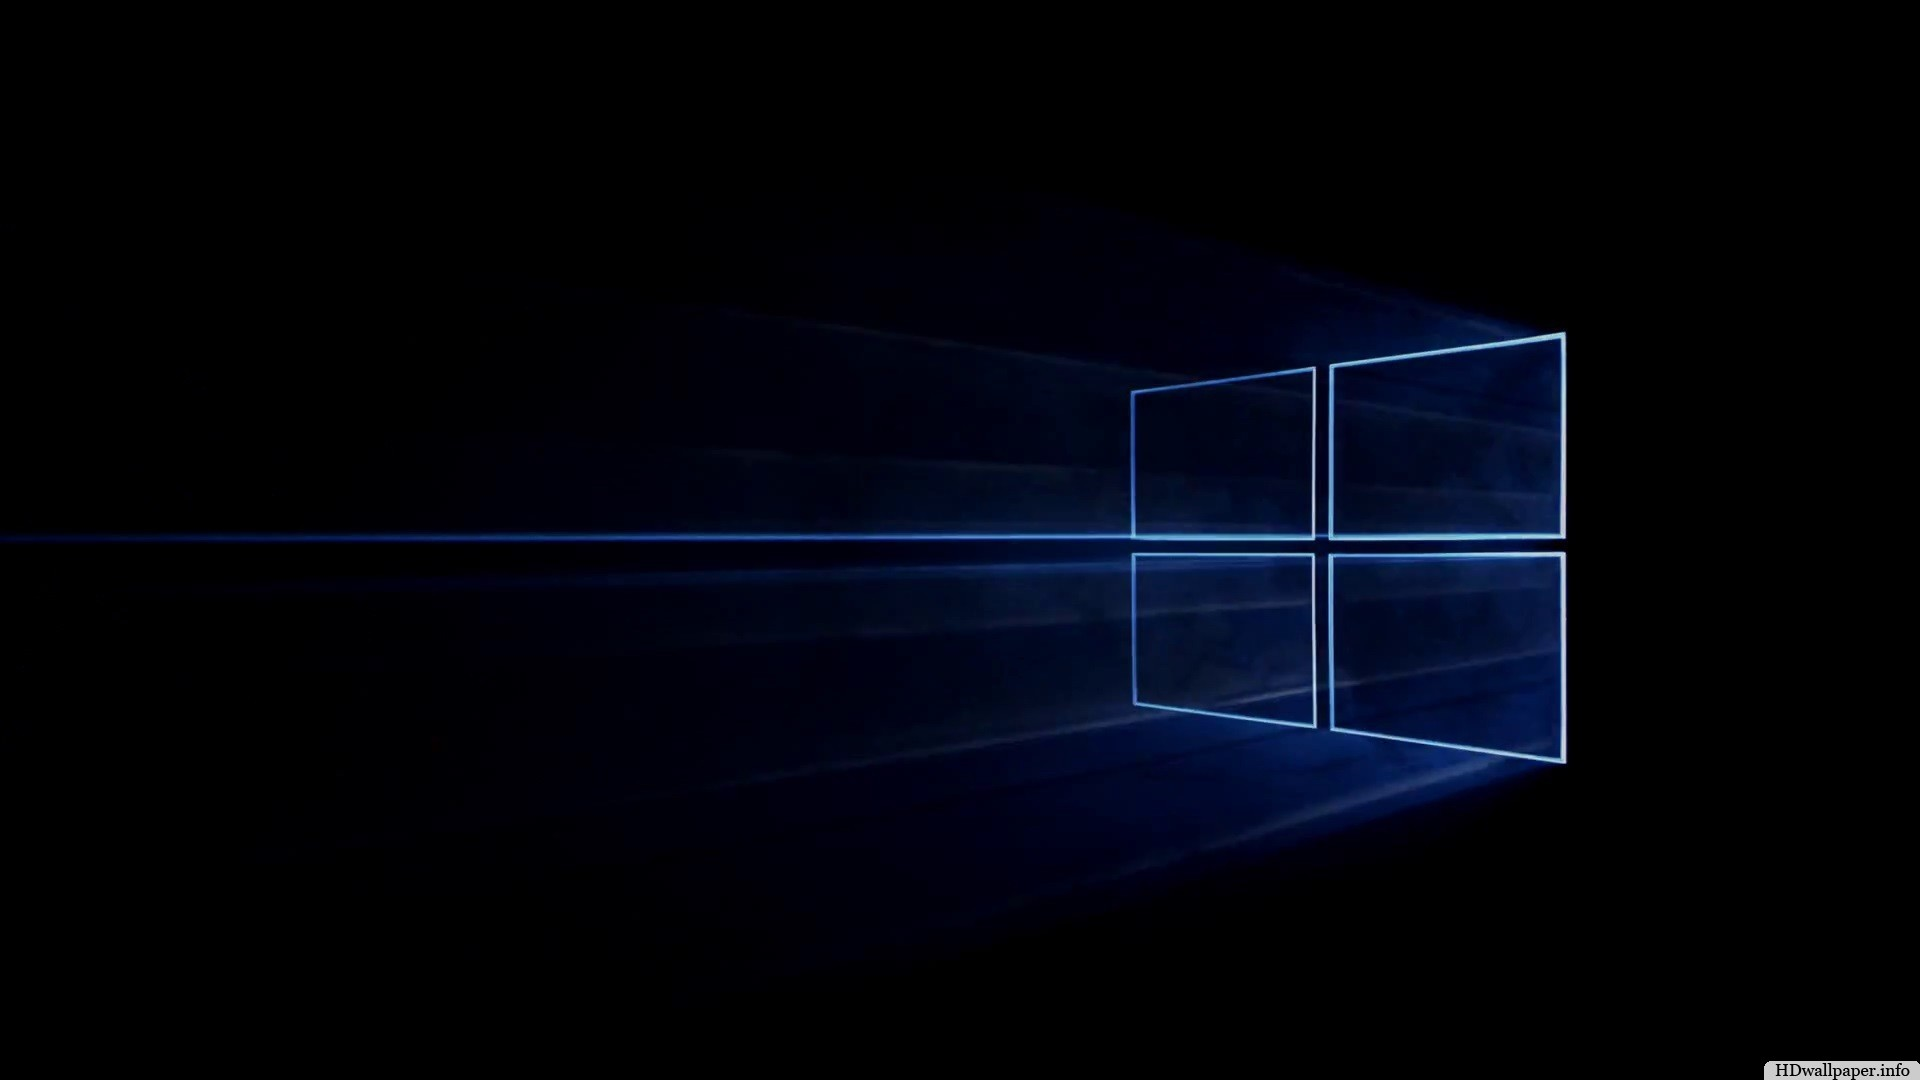 1920x1080 Latest Hd Desktop Wallpapers Windows 10 - http://hdwallpaper.info/latest